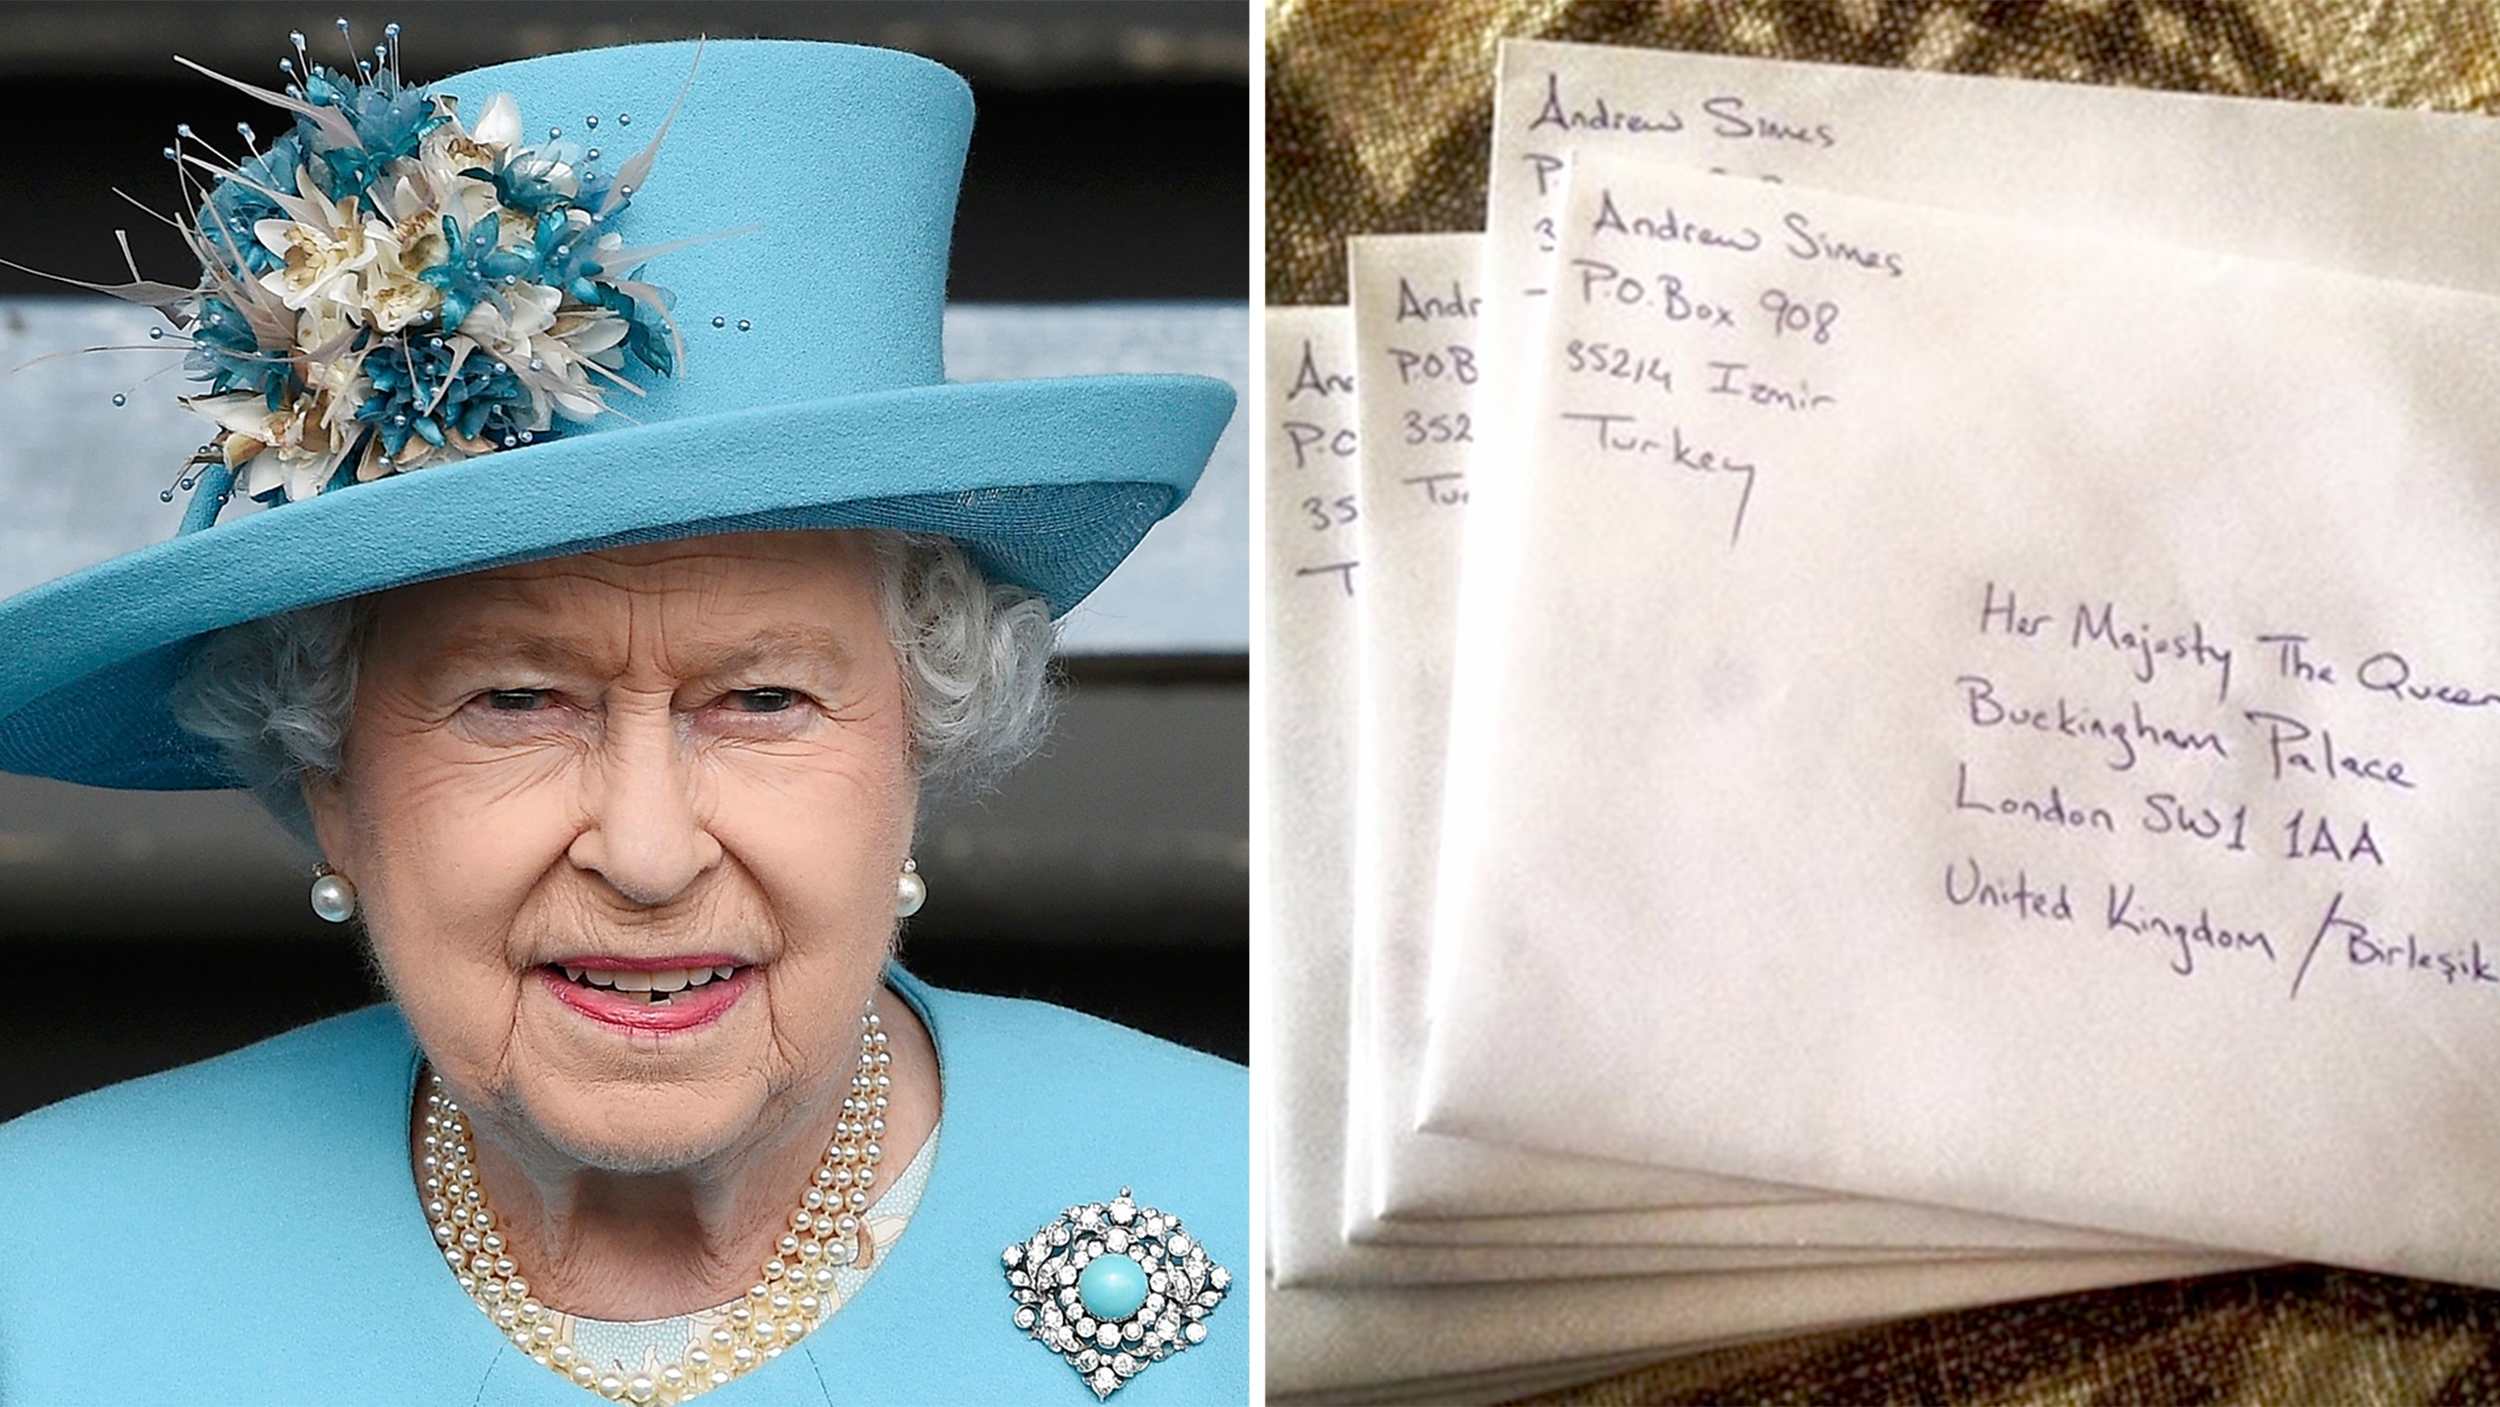 Queen Elizabeth Personally Thanks Man Who Sent Her